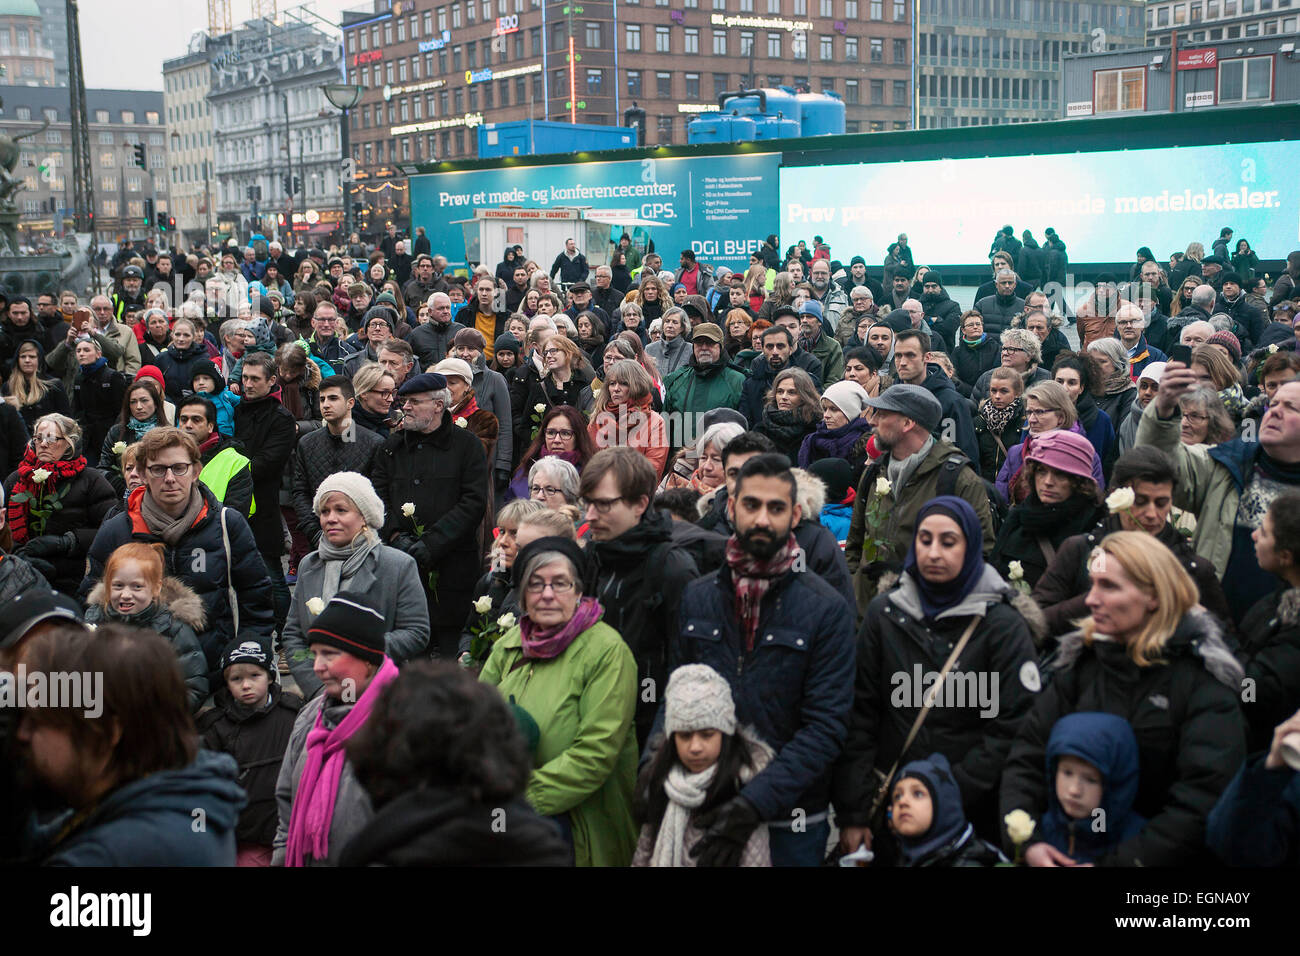 Copenhagen, Denmark. 27th February, 2015. Many hundreds Copenhageners joined the rally at Copenhagen City Hall Square - Stock Image